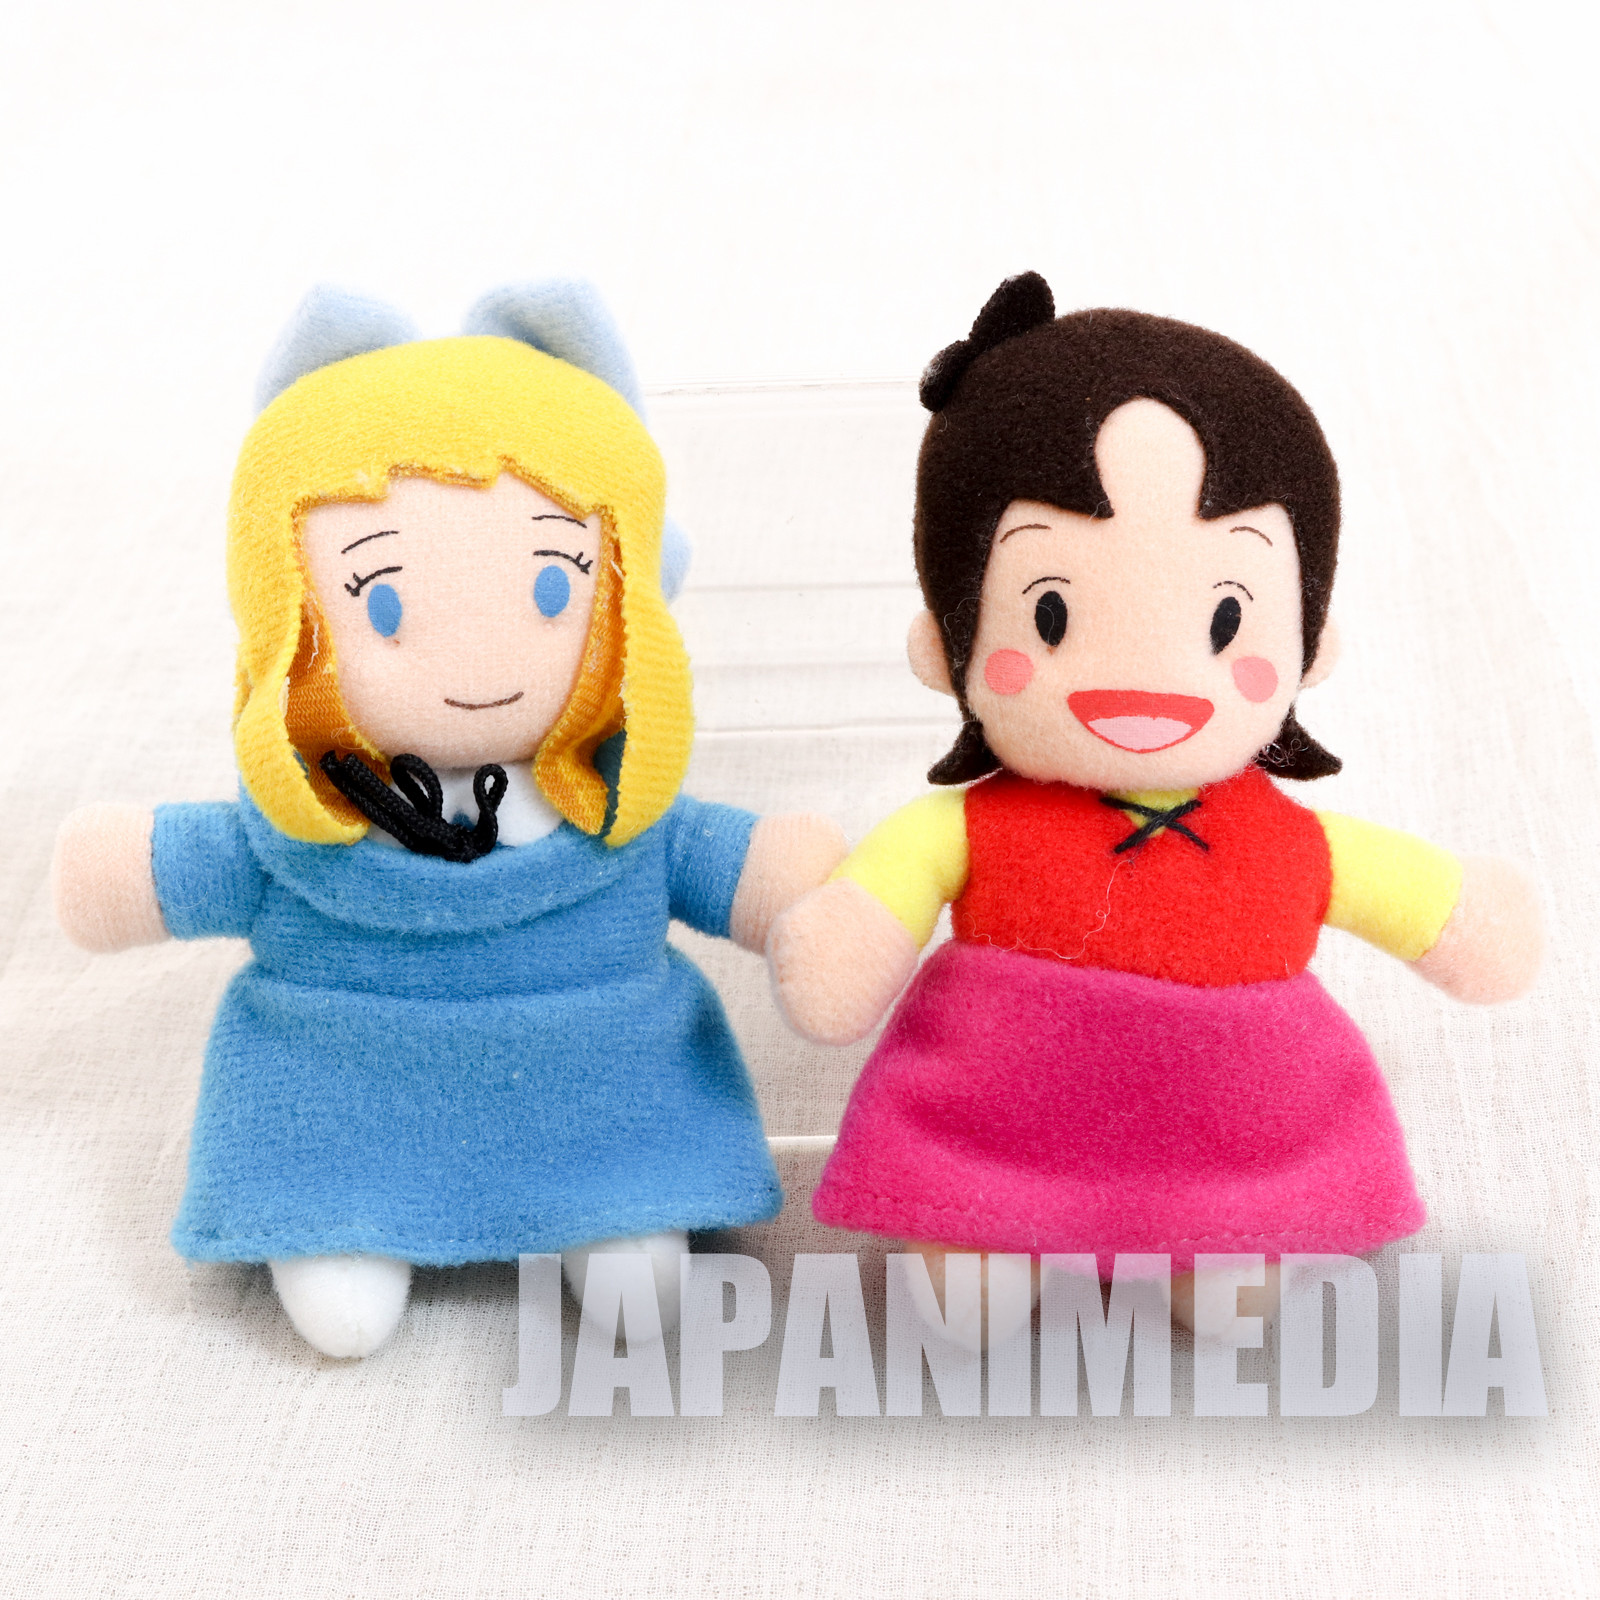 Heidi Girl of the Alps Heidi + Clara Mini Plush Doll w/ Magnet Set JAPAN ANIME